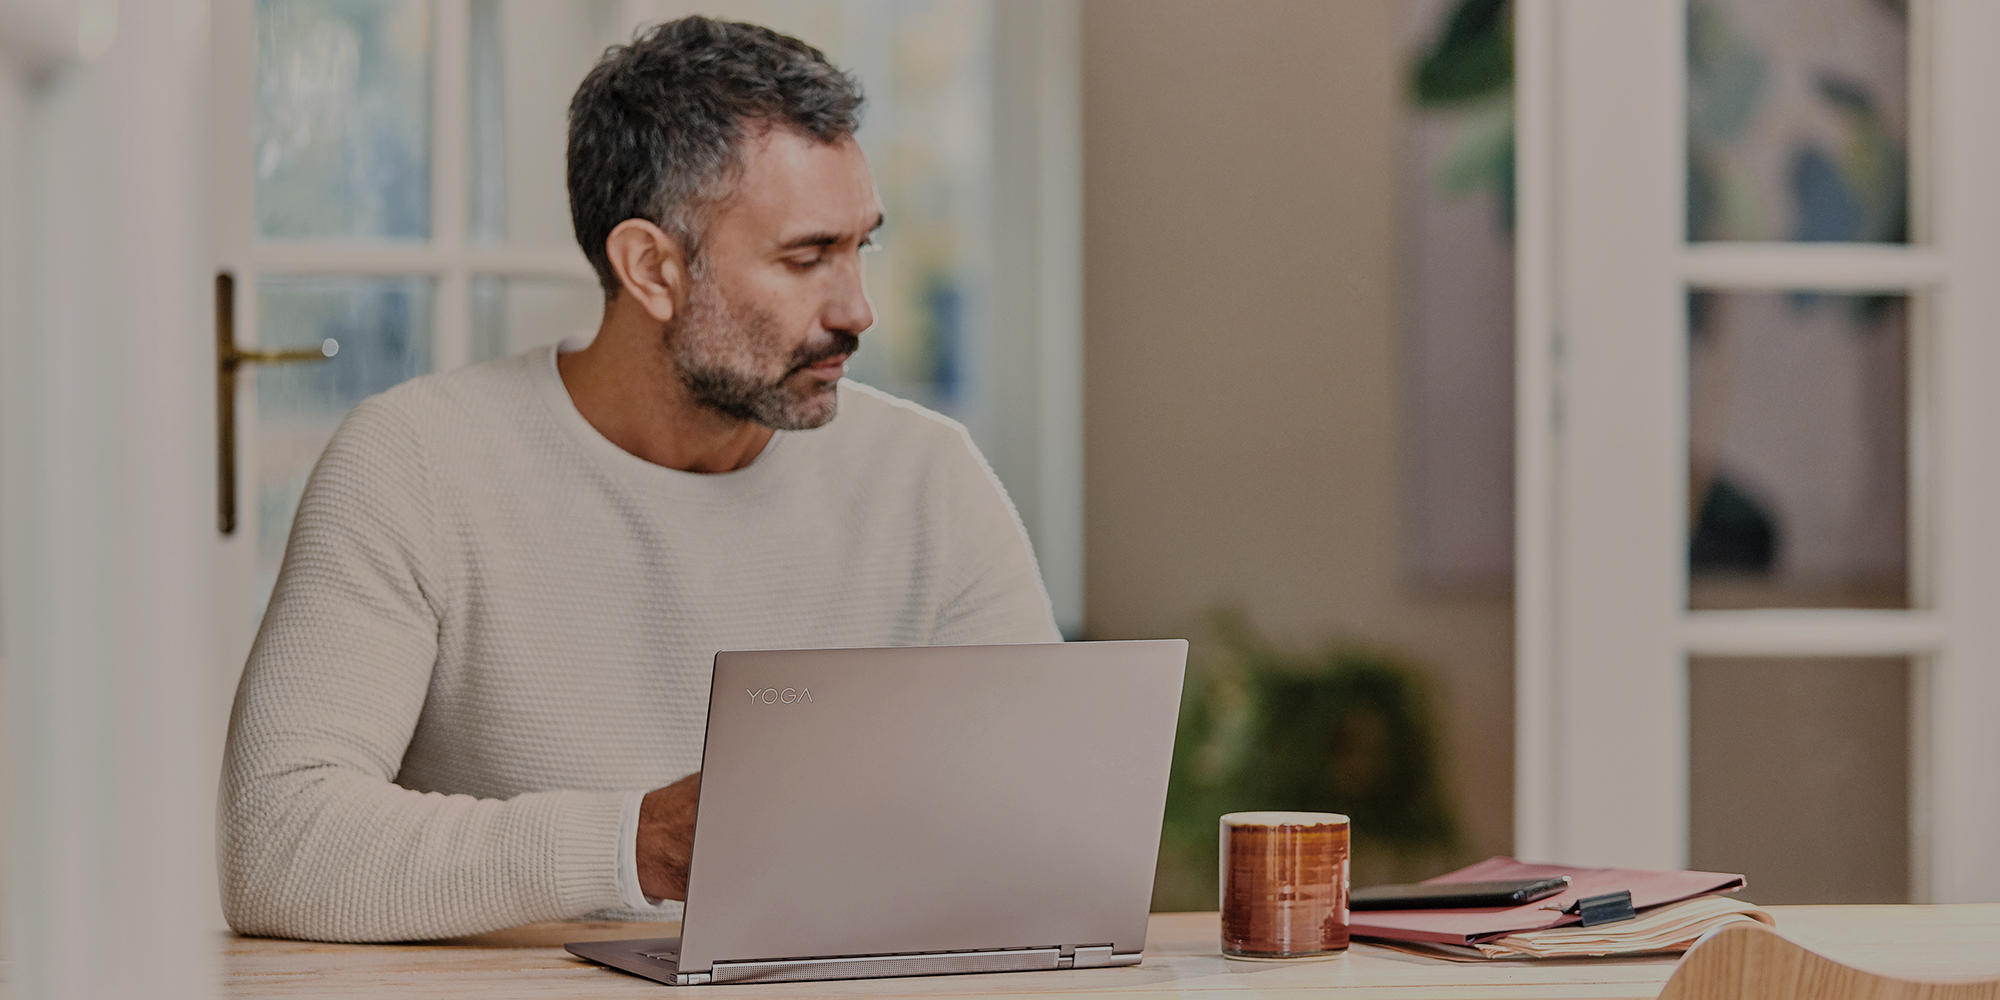 a man standing in front of a laptop computer